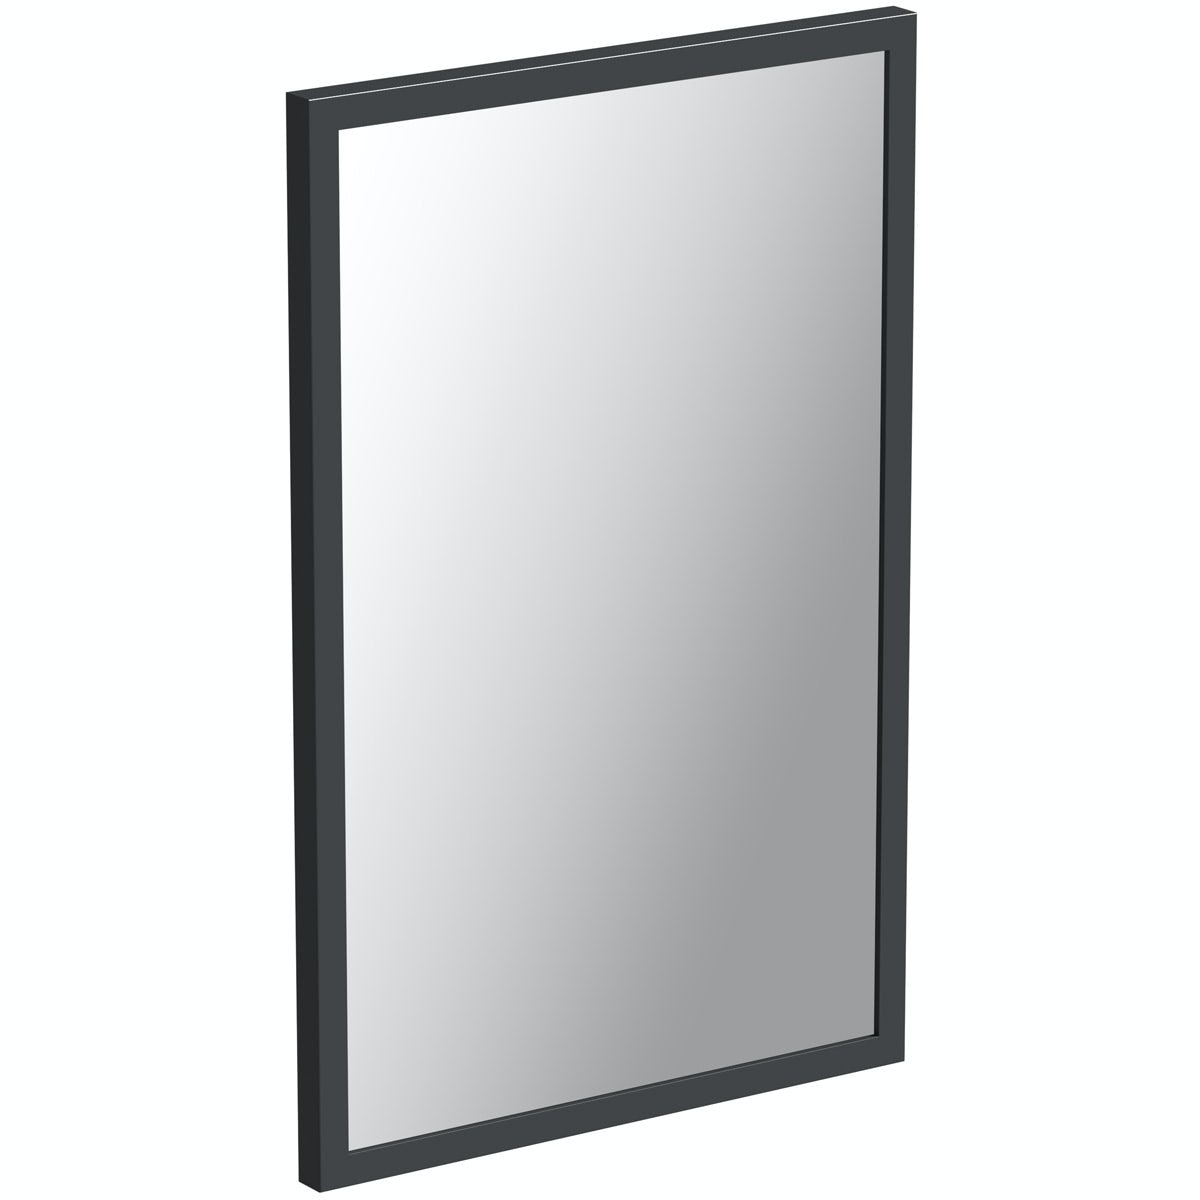 Mode Hale grey gloss bathroom mirror 850 x 550mm